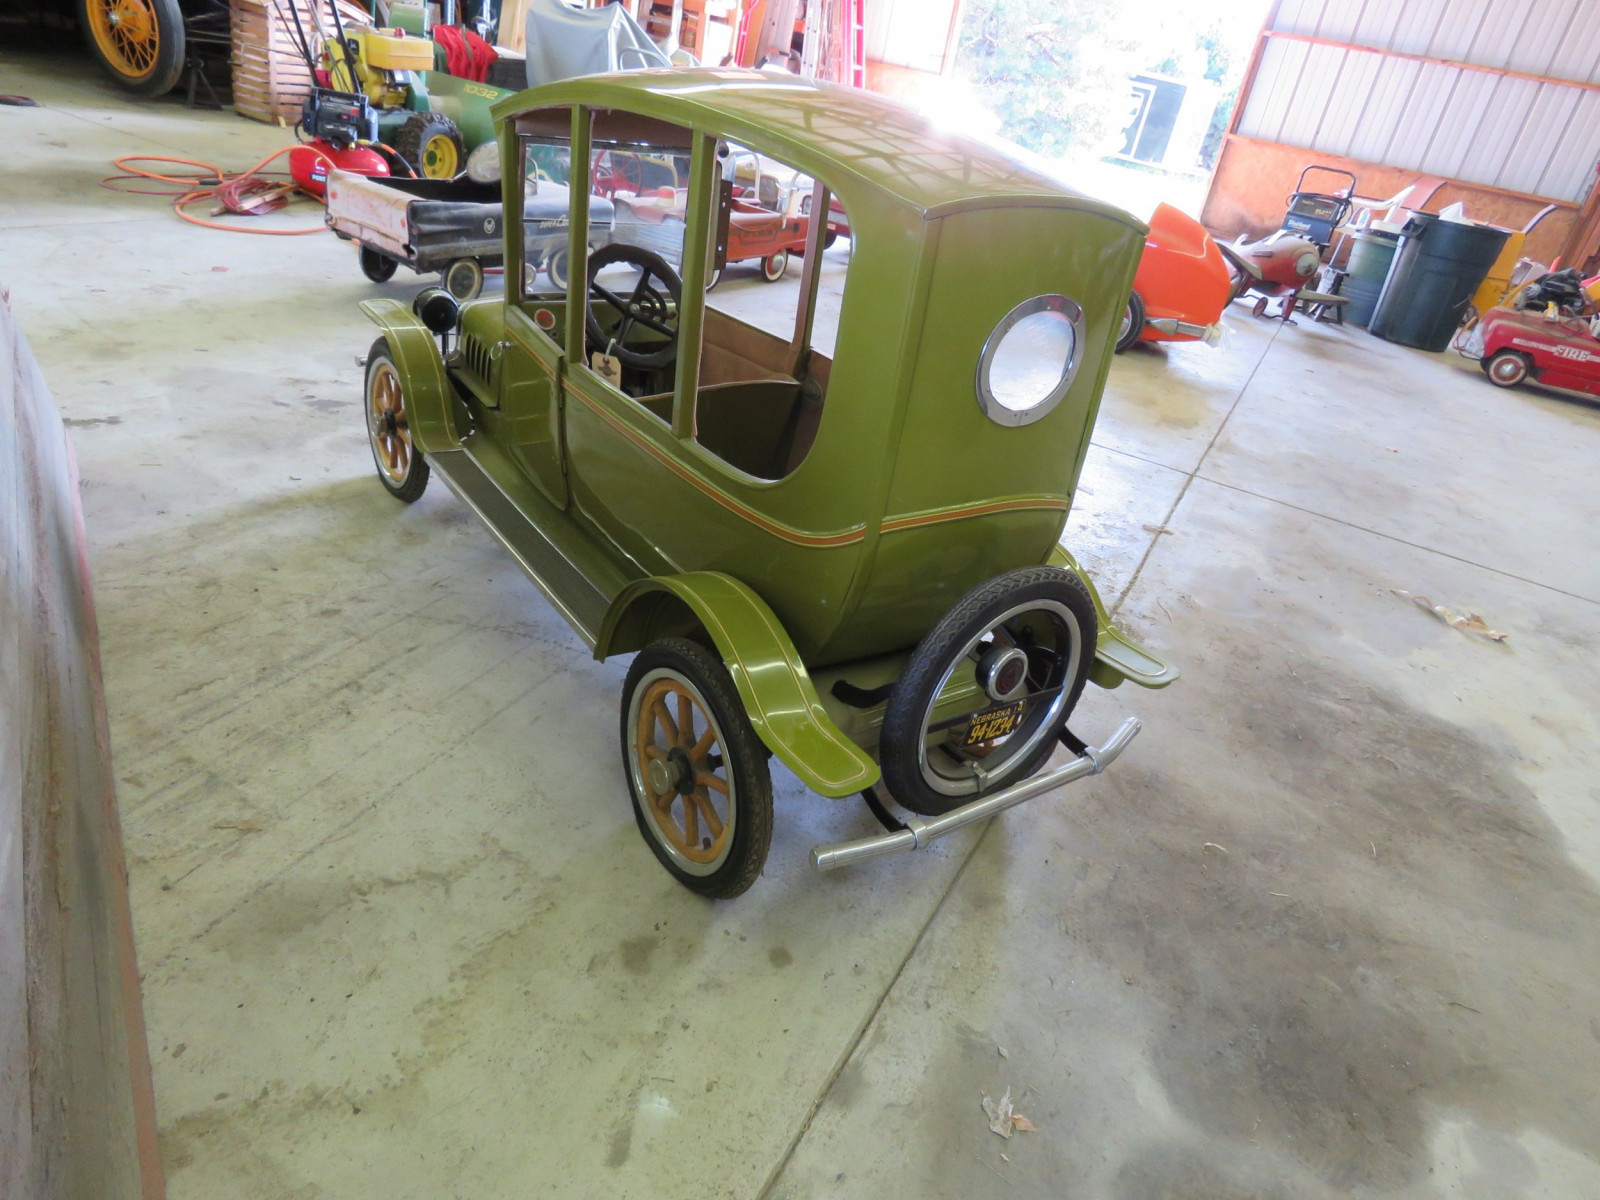 Ford Model T Center-Door Pedal Car - Image 4